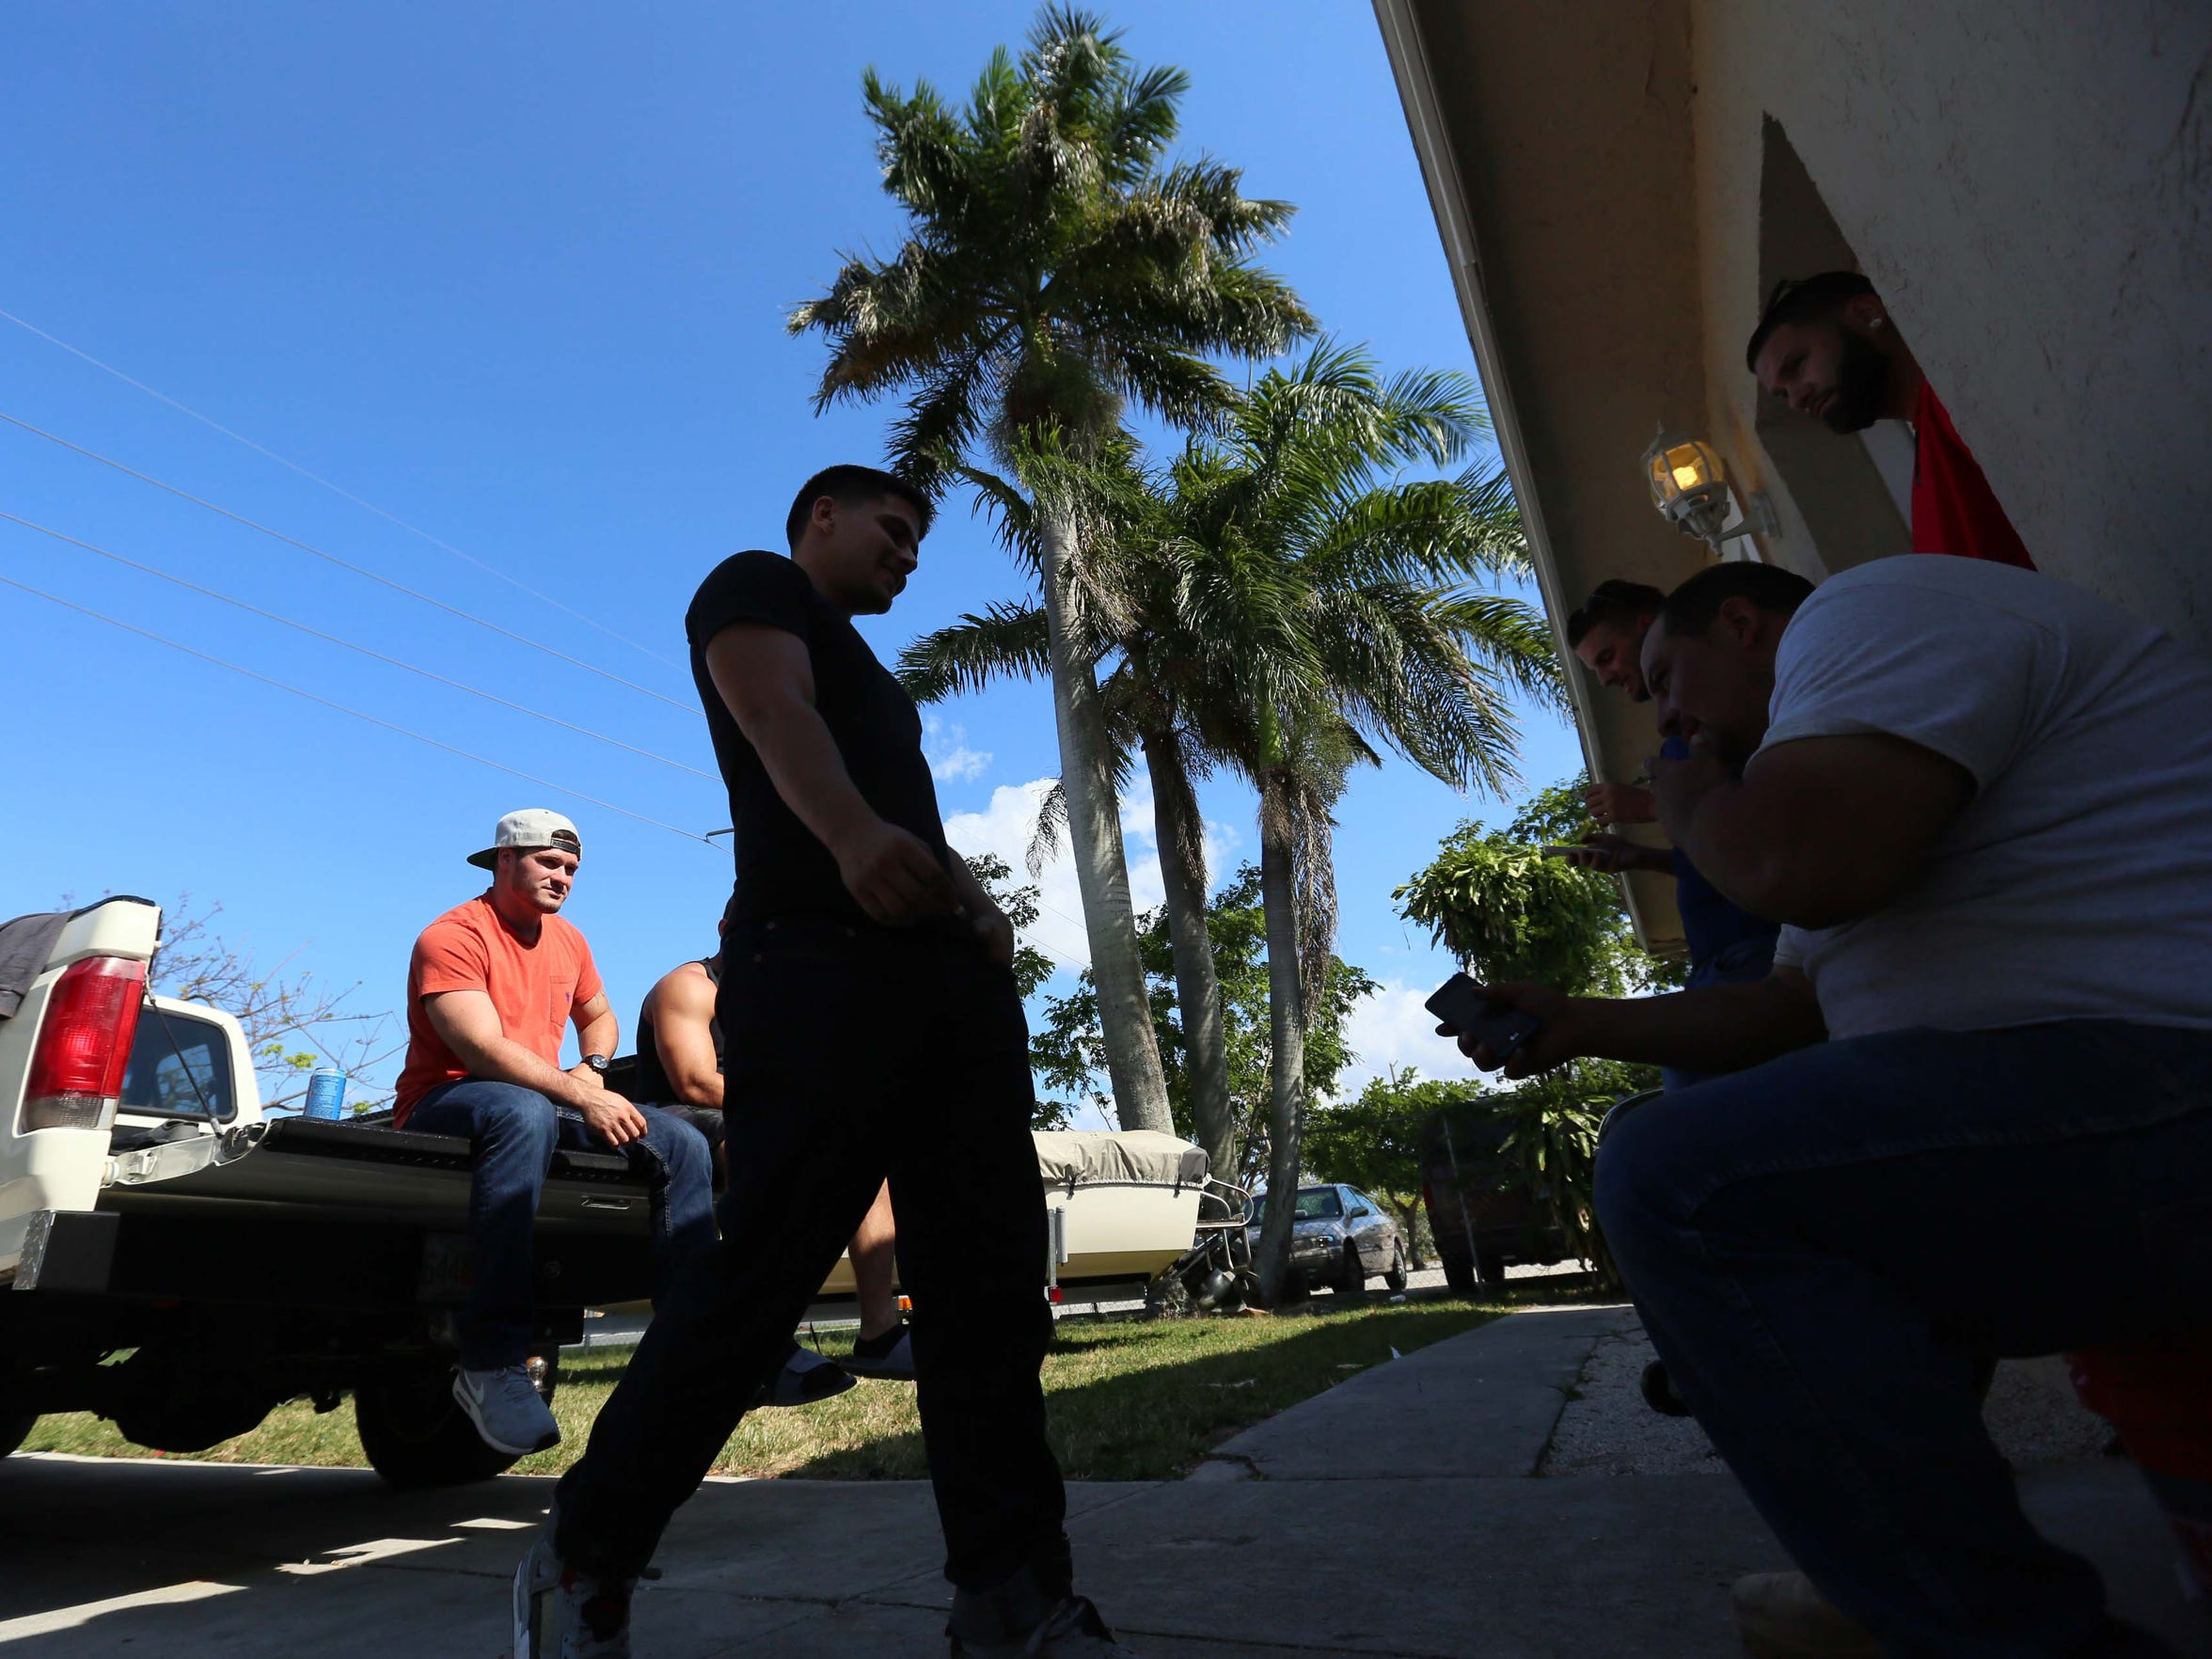 Marc Blum hangs out with his roommates from a recovery house in Delray Beach, Fla.